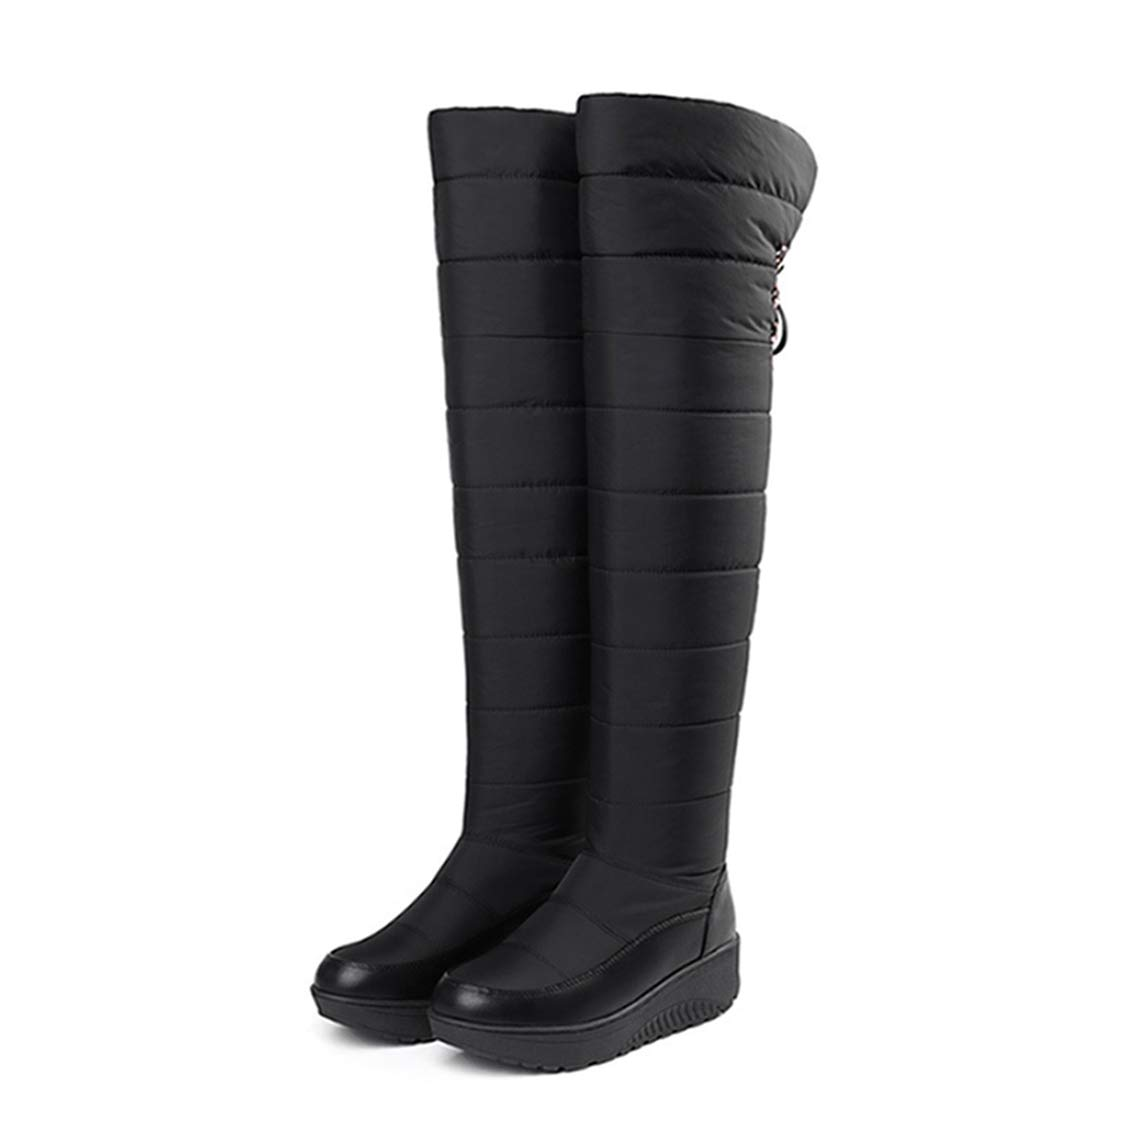 Black DOSOMI Women's Waterproof Sexy Winter Fully Down Lined Middle Heel Round Toe Snow Over-The-Knee High Boots